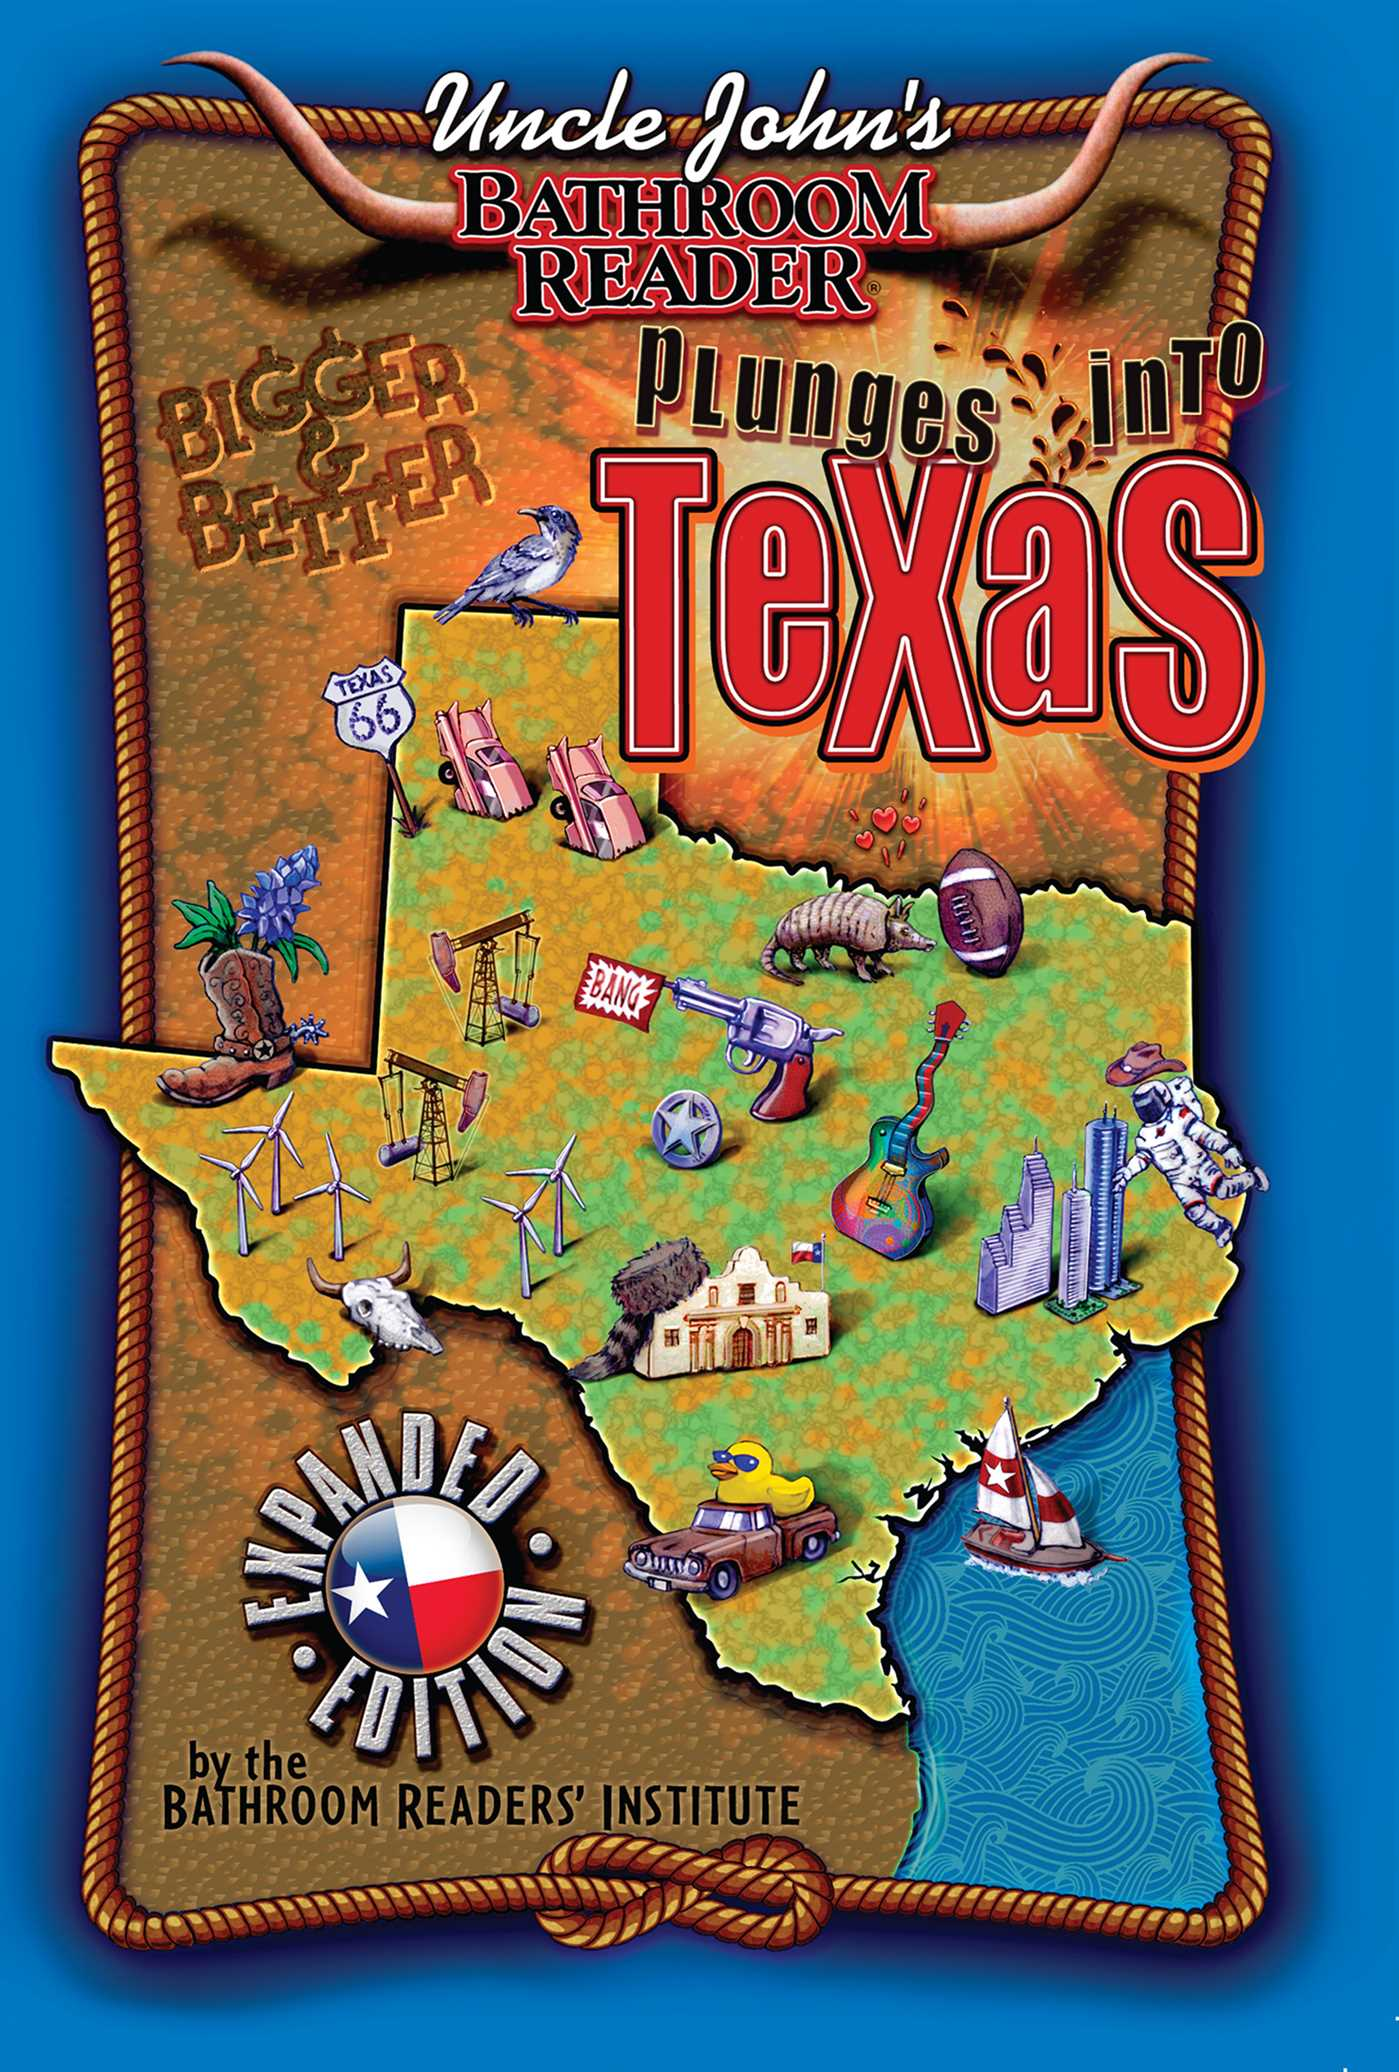 Uncle johns bathroom reader plunges into texas bigger and better 9781607108061 hr